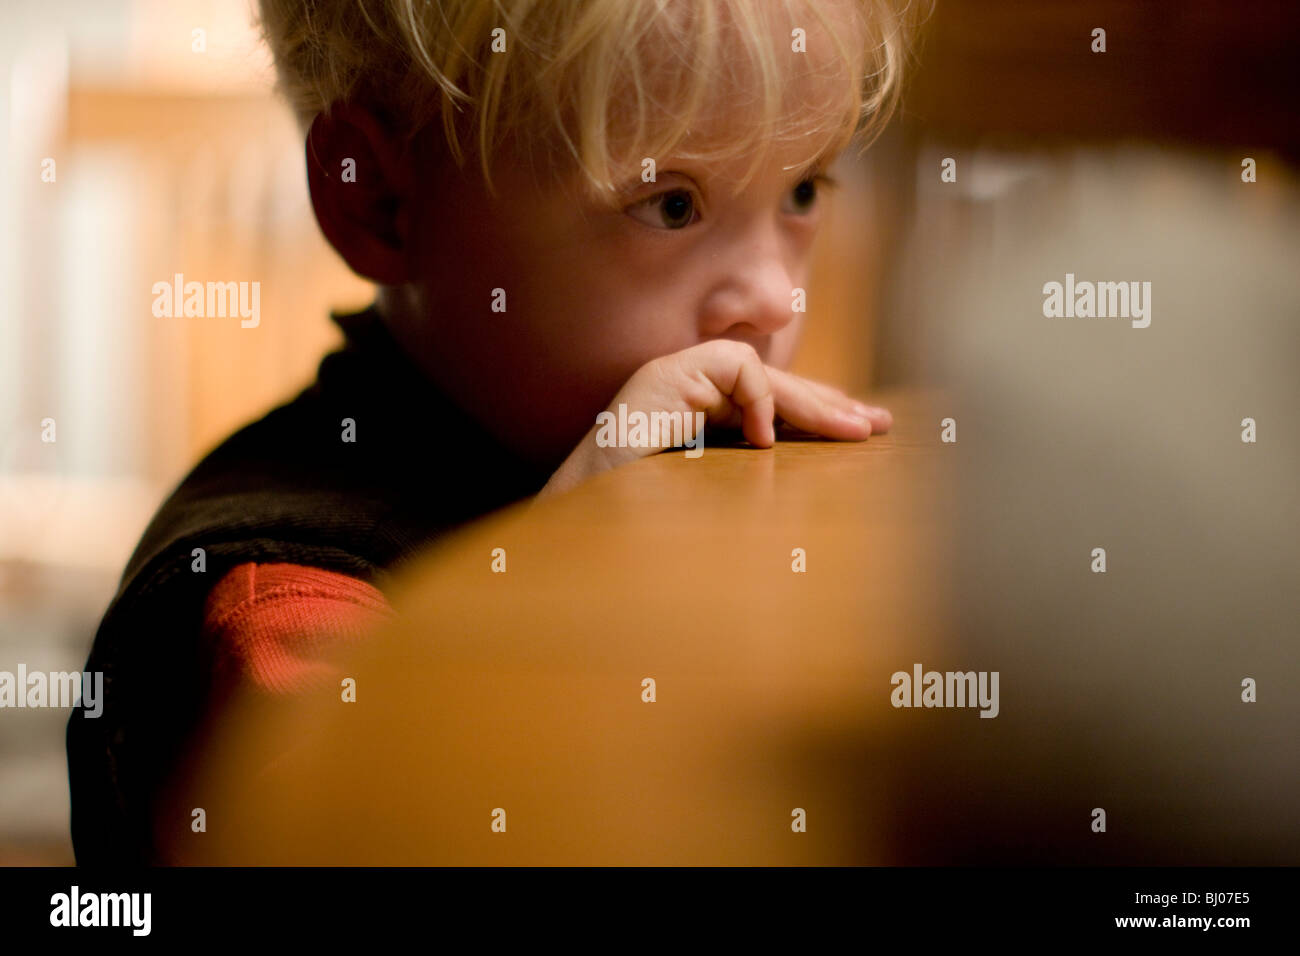 Young boy leaning on edge of table in thought. - Stock Image